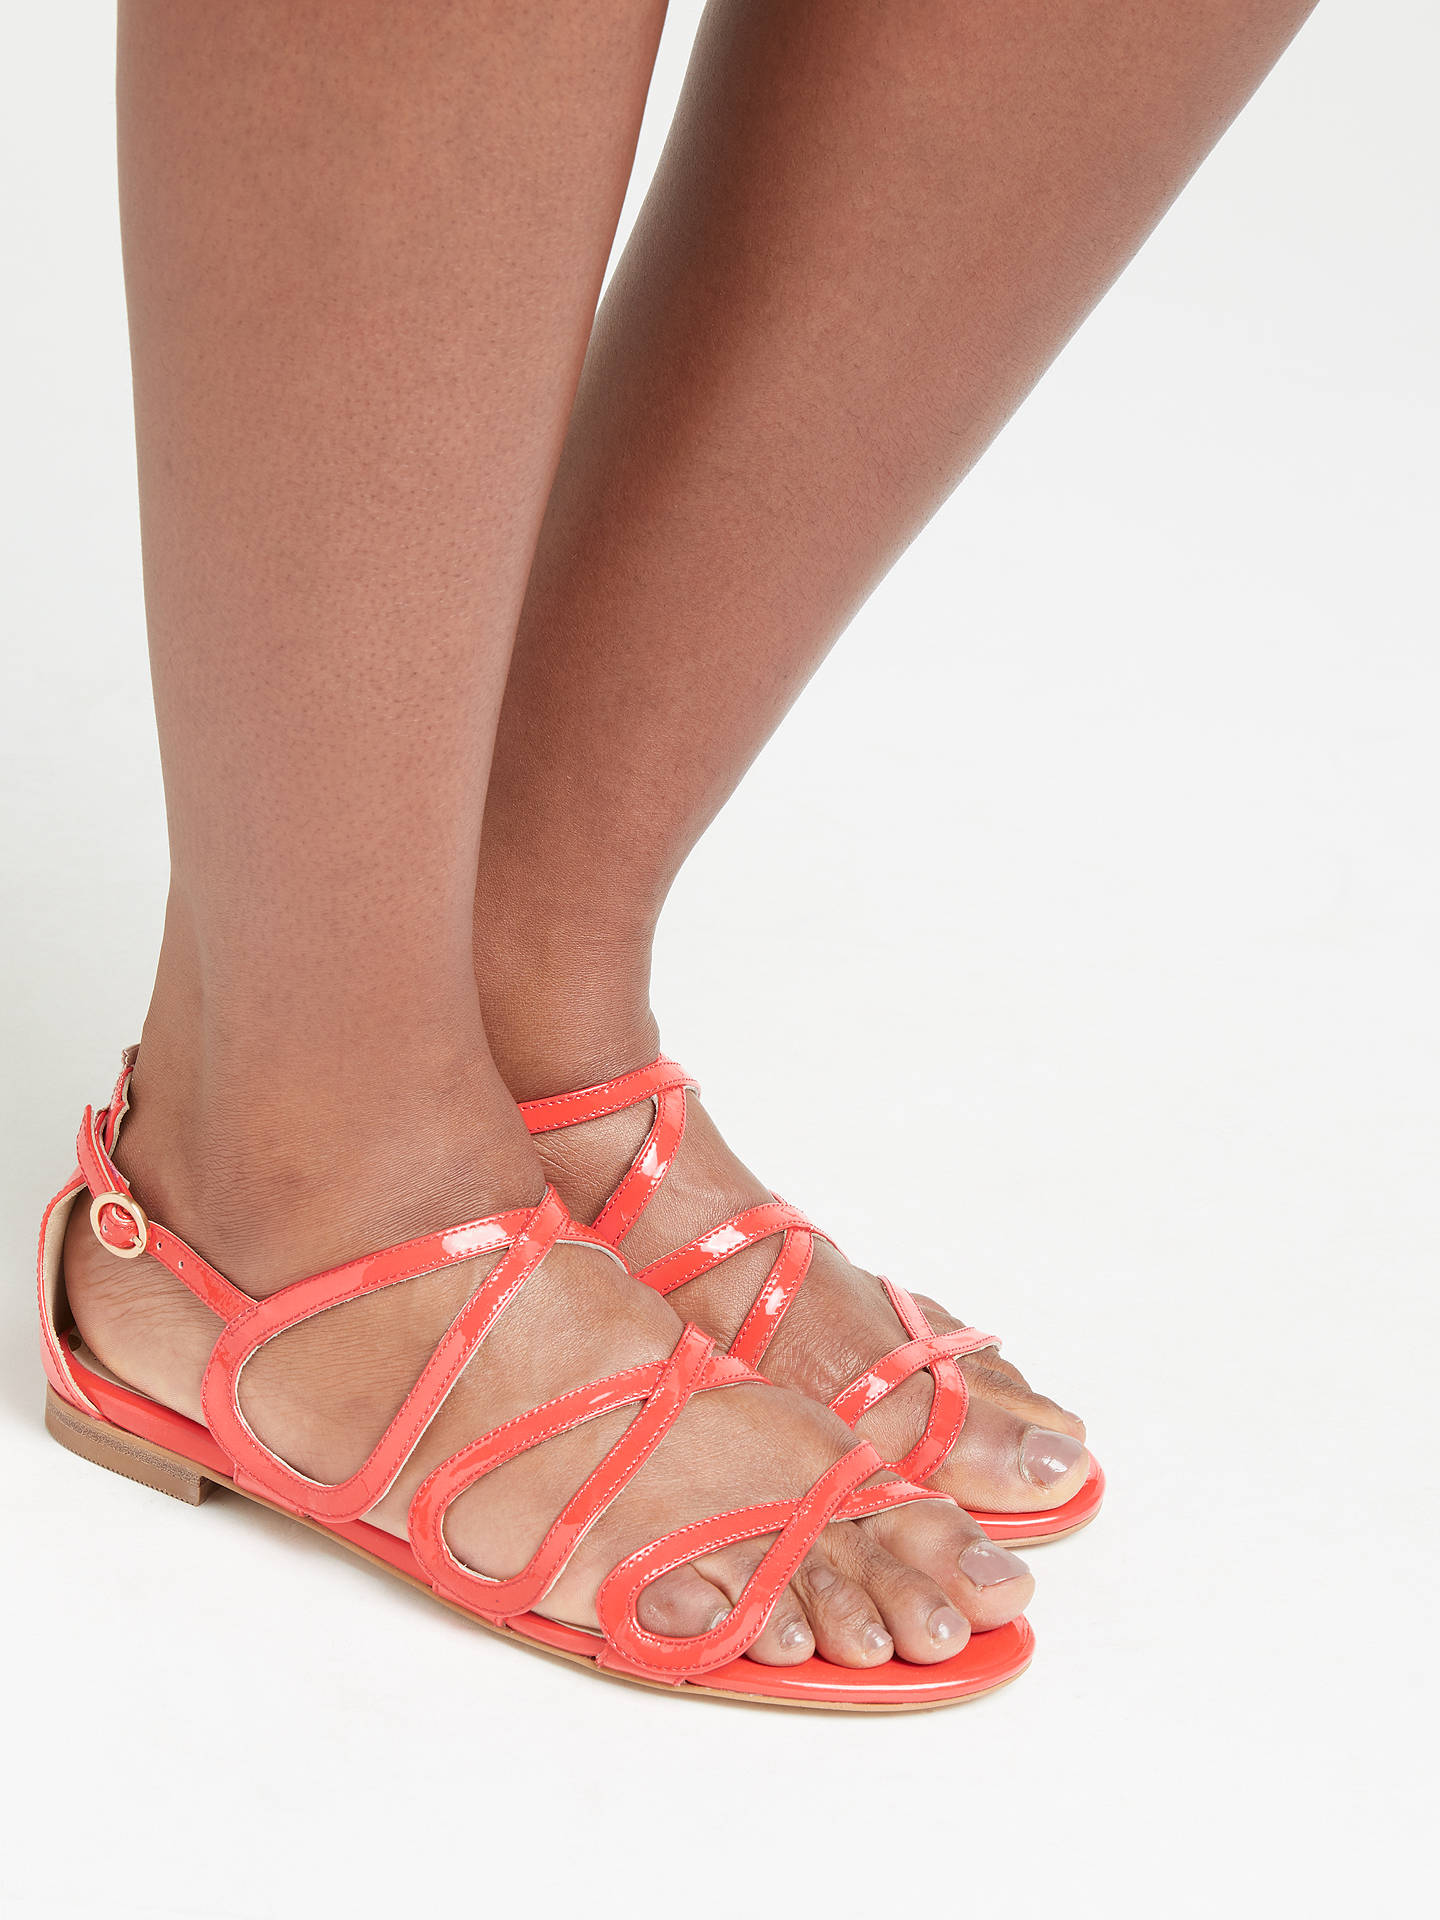 Buy Boden Adela Multi Strap Sandals, Red Leather, 4 Online at johnlewis.com